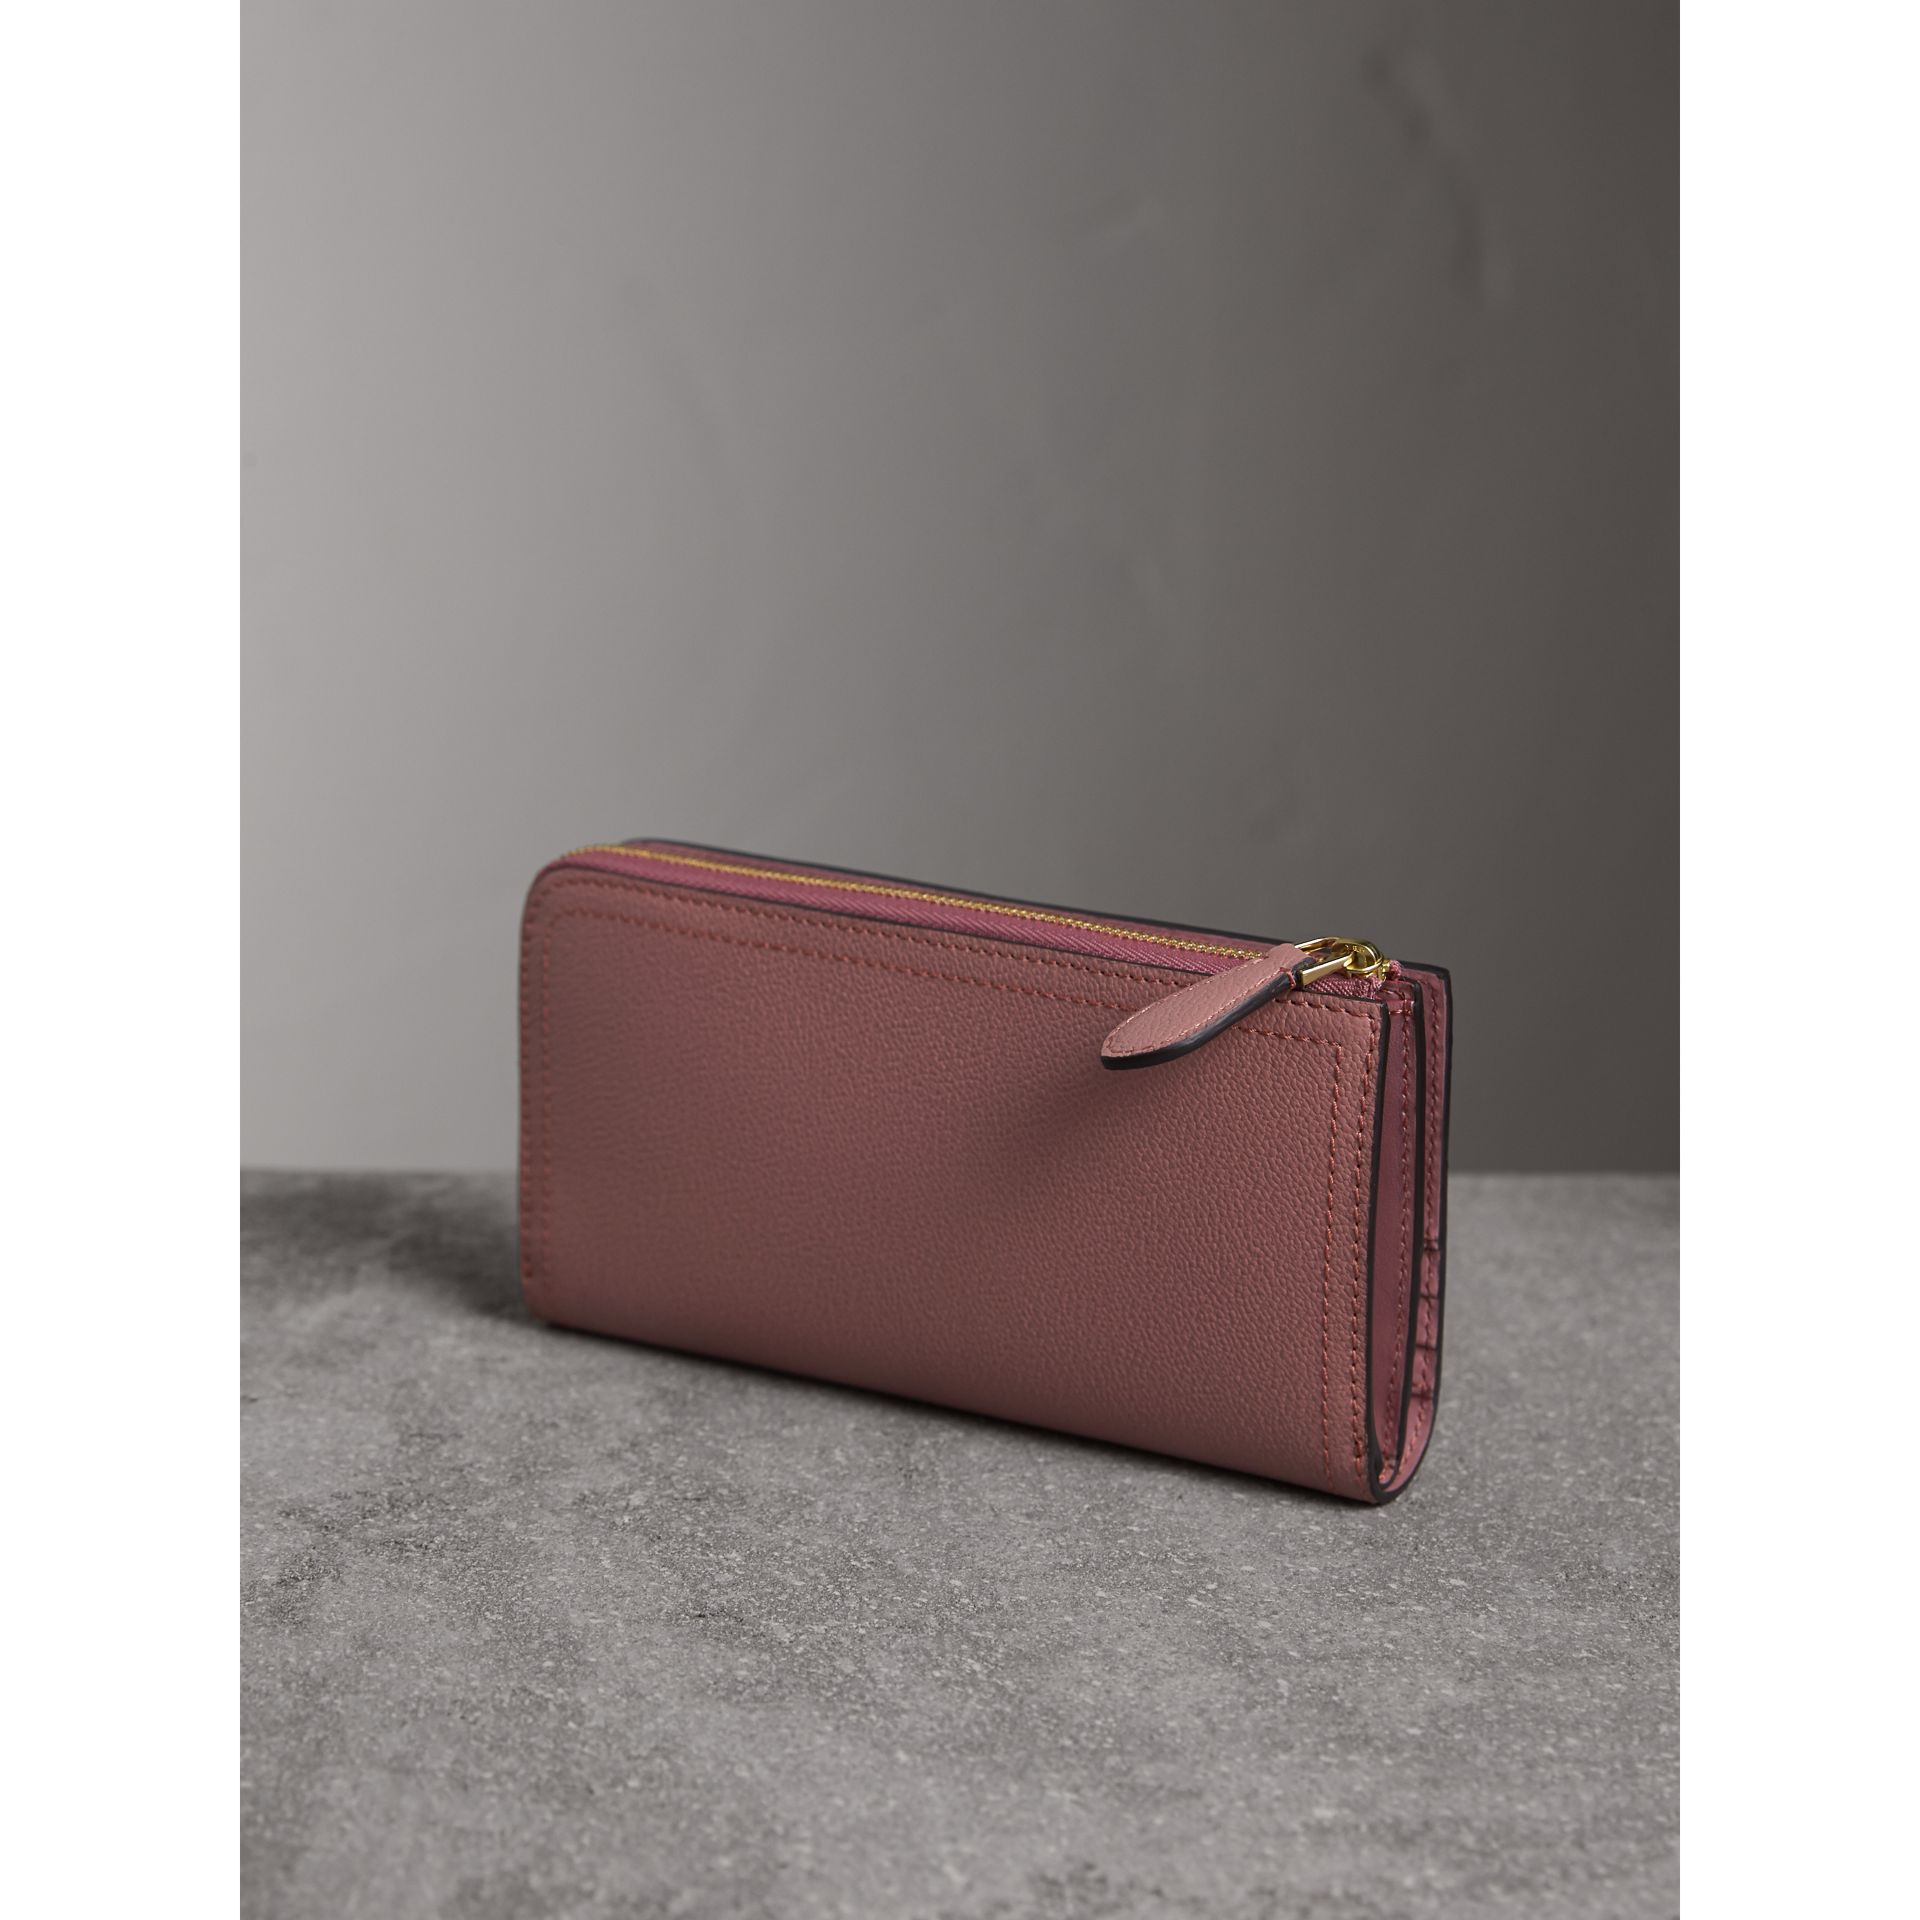 Grainy Leather Ziparound Wallet in Dusty Pink - Women | Burberry United States - gallery image 2